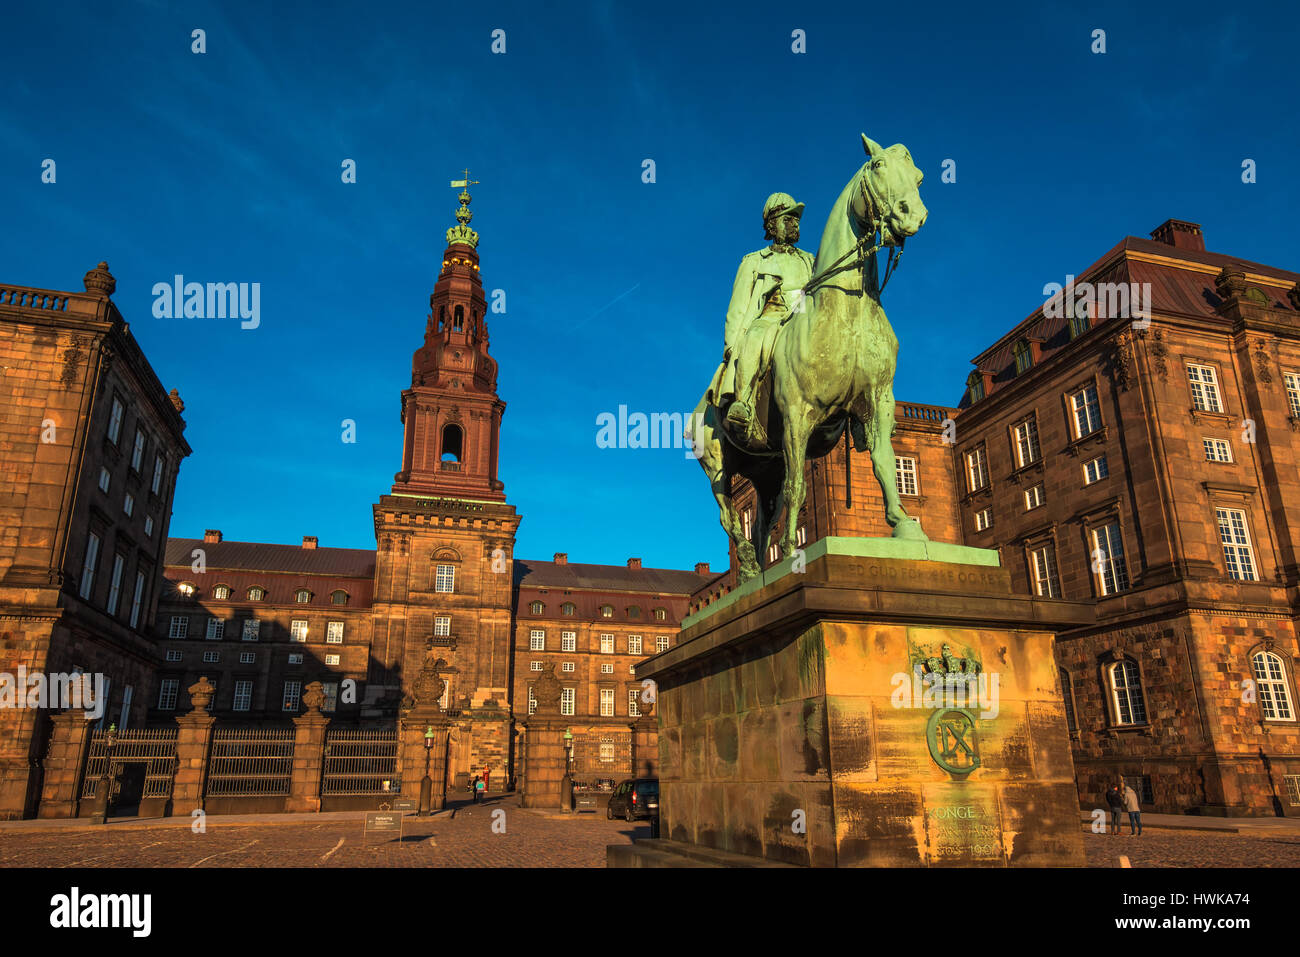 COPENHAGEN, DENMARK - MARCH 11, 2017: Equestrian statue of King Christian the 9th Copenhagen Denmark Inside the - Stock Image